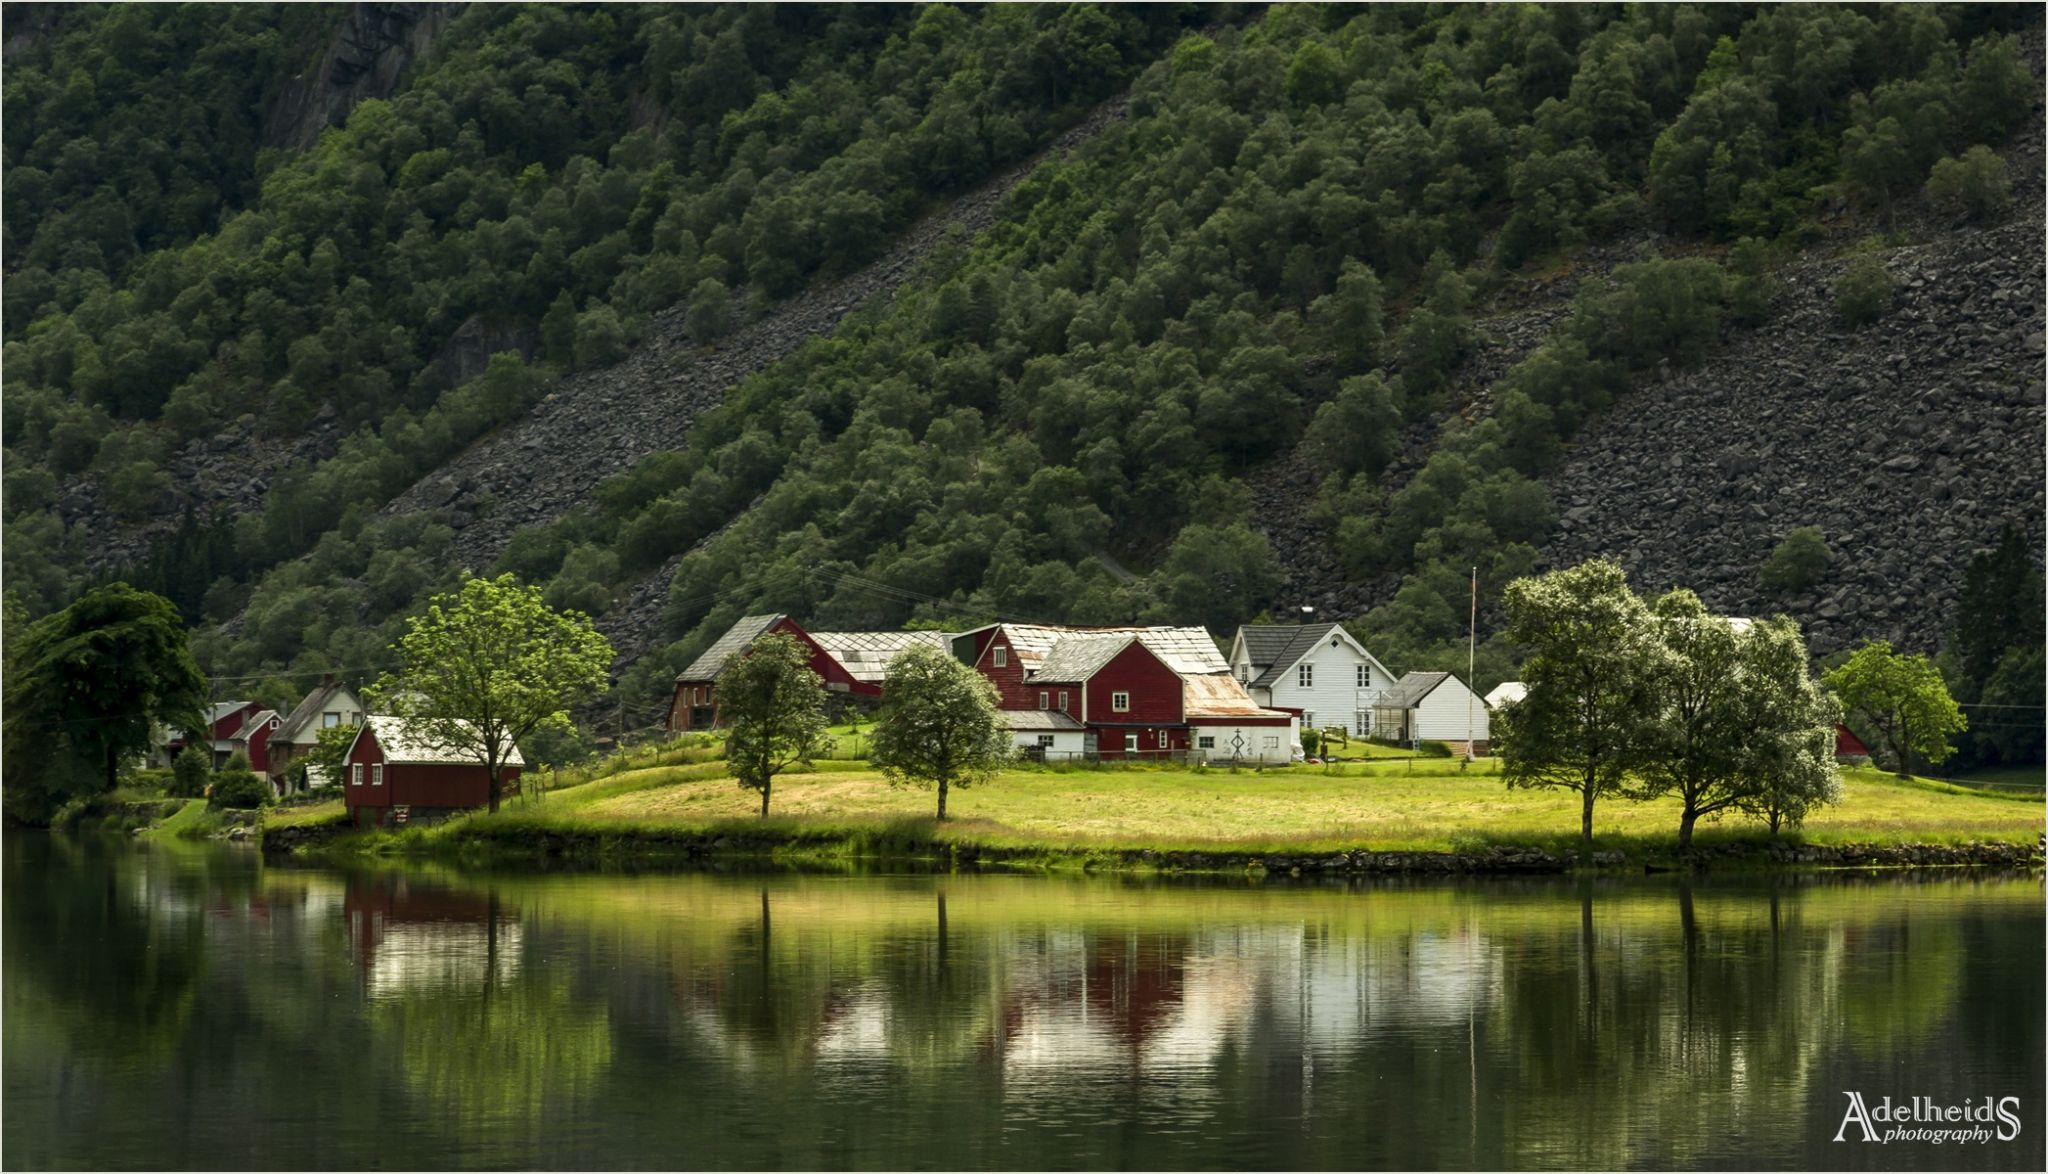 Sandvin farmstead, Norway